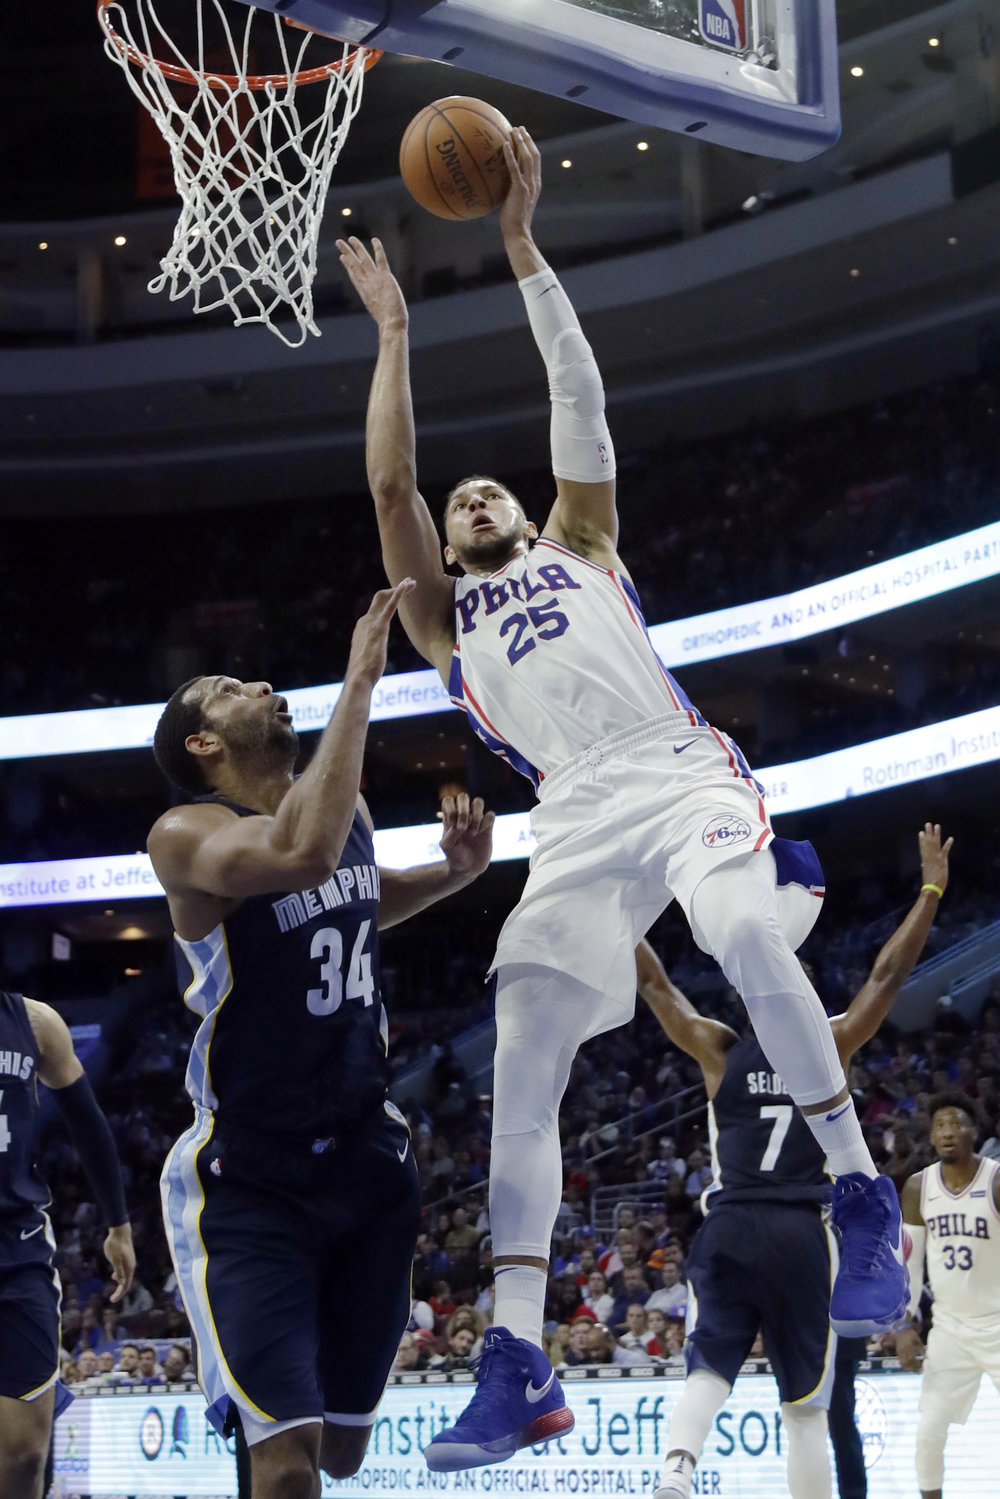 Philadelphia 76ers' Ben Simmons, right, goes up for a shot against Memphis Grizzlies' Brandan Wright during the second half of a preseason NBA basketball game, Wednesday, Oct. 4, 2017, in Philadelphia. (AP Photo/Matt Slocum)